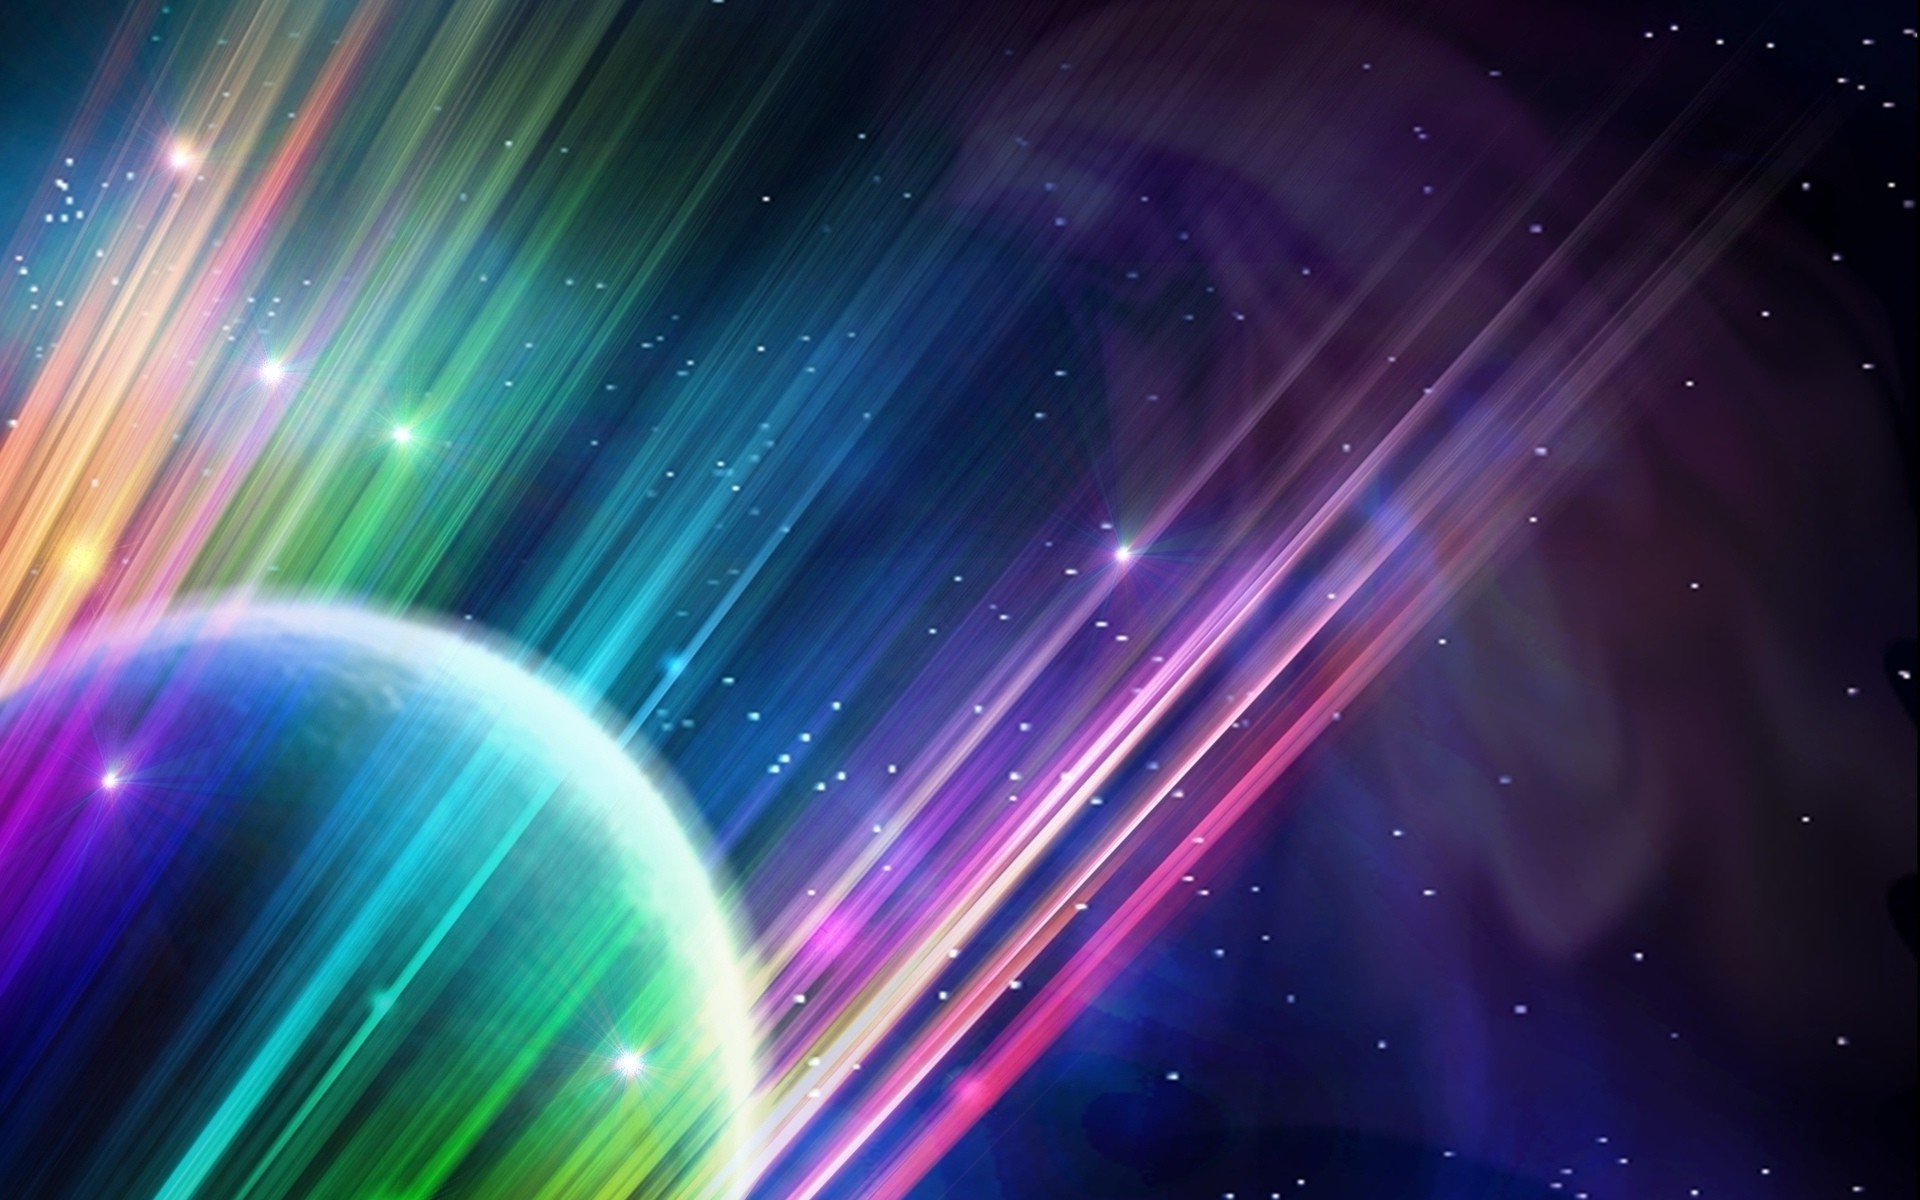 planet abstract space fantasy light illustration graphic energy science galaxy motion astronomy blur bright wallpaper design futuristic desktop future art shape